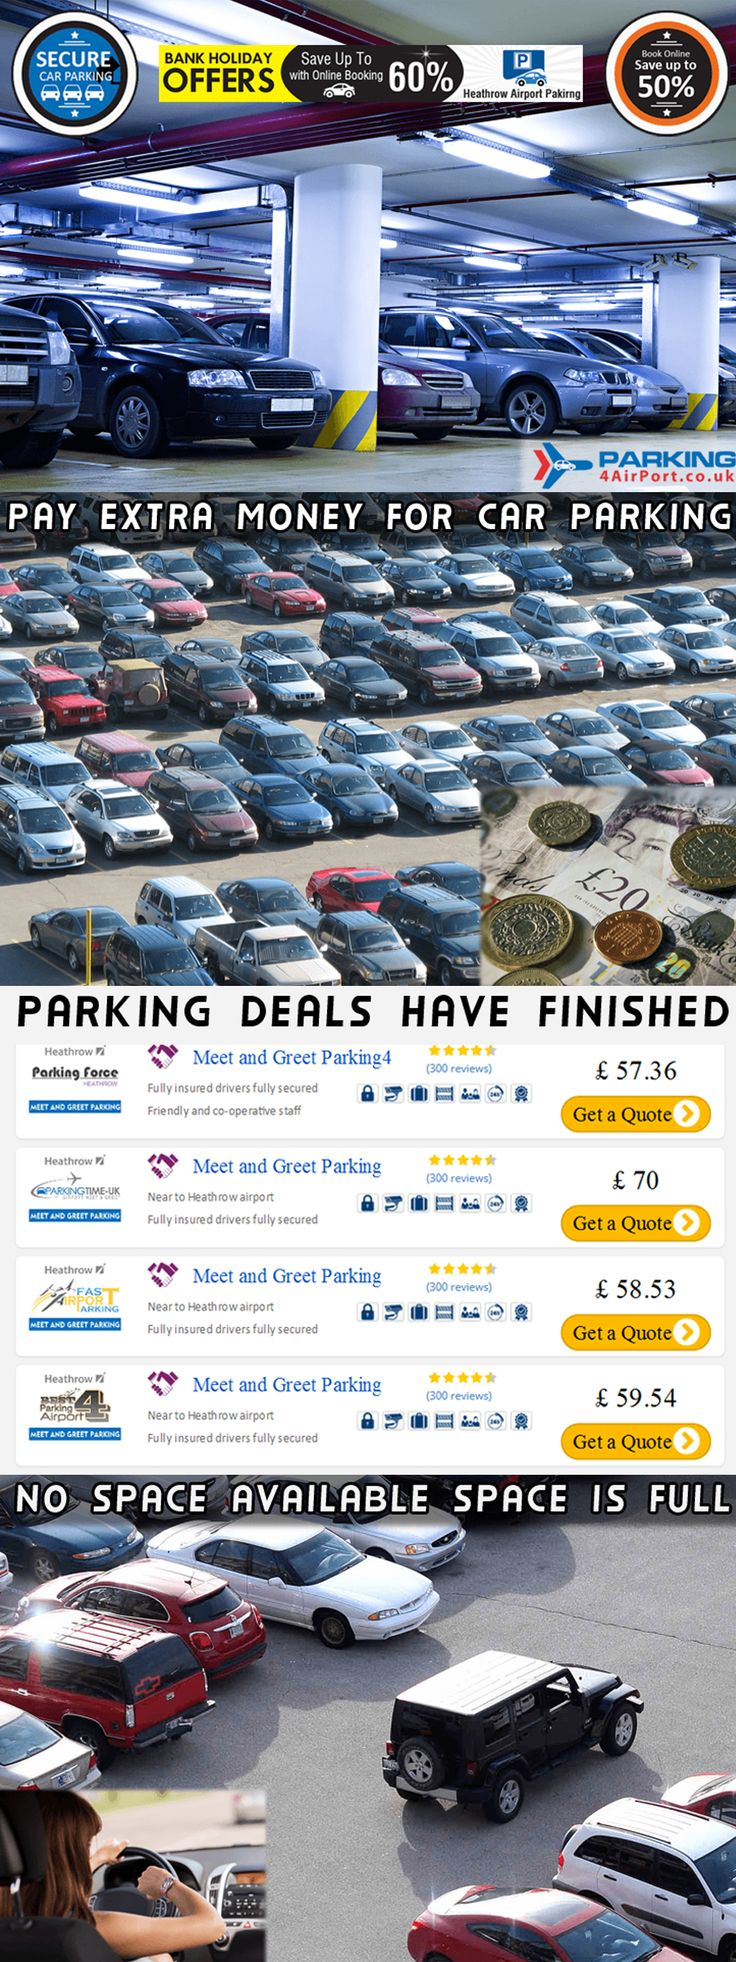 52 best valet parking 4 heathrow images on pinterest park parks and 1 5 problems you will face if you dont book early parking 4 airport m4hsunfo